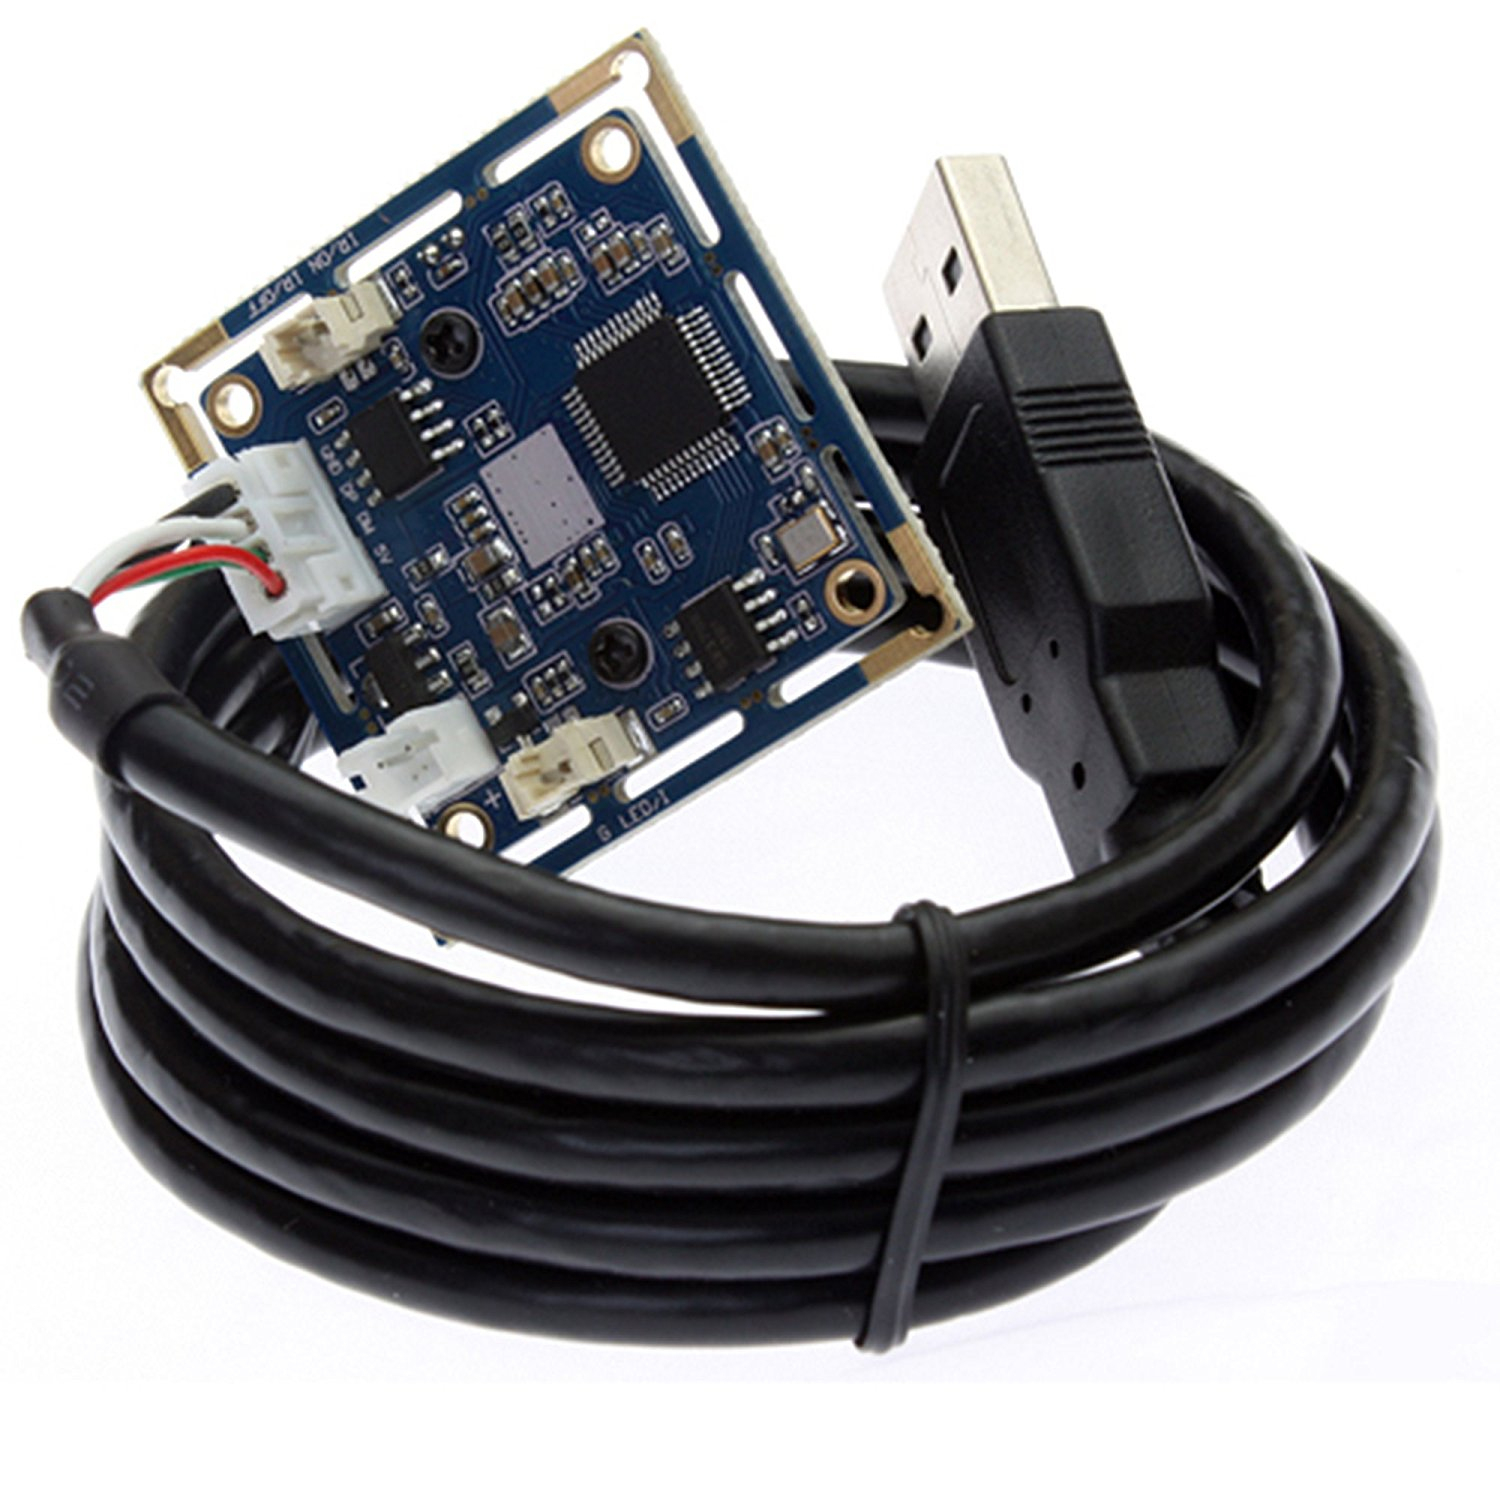 Custom Wiring A Micro Camera To A Usb - Electrical Engineering Stack - Usb Wiring Diagram For Ccd Camers